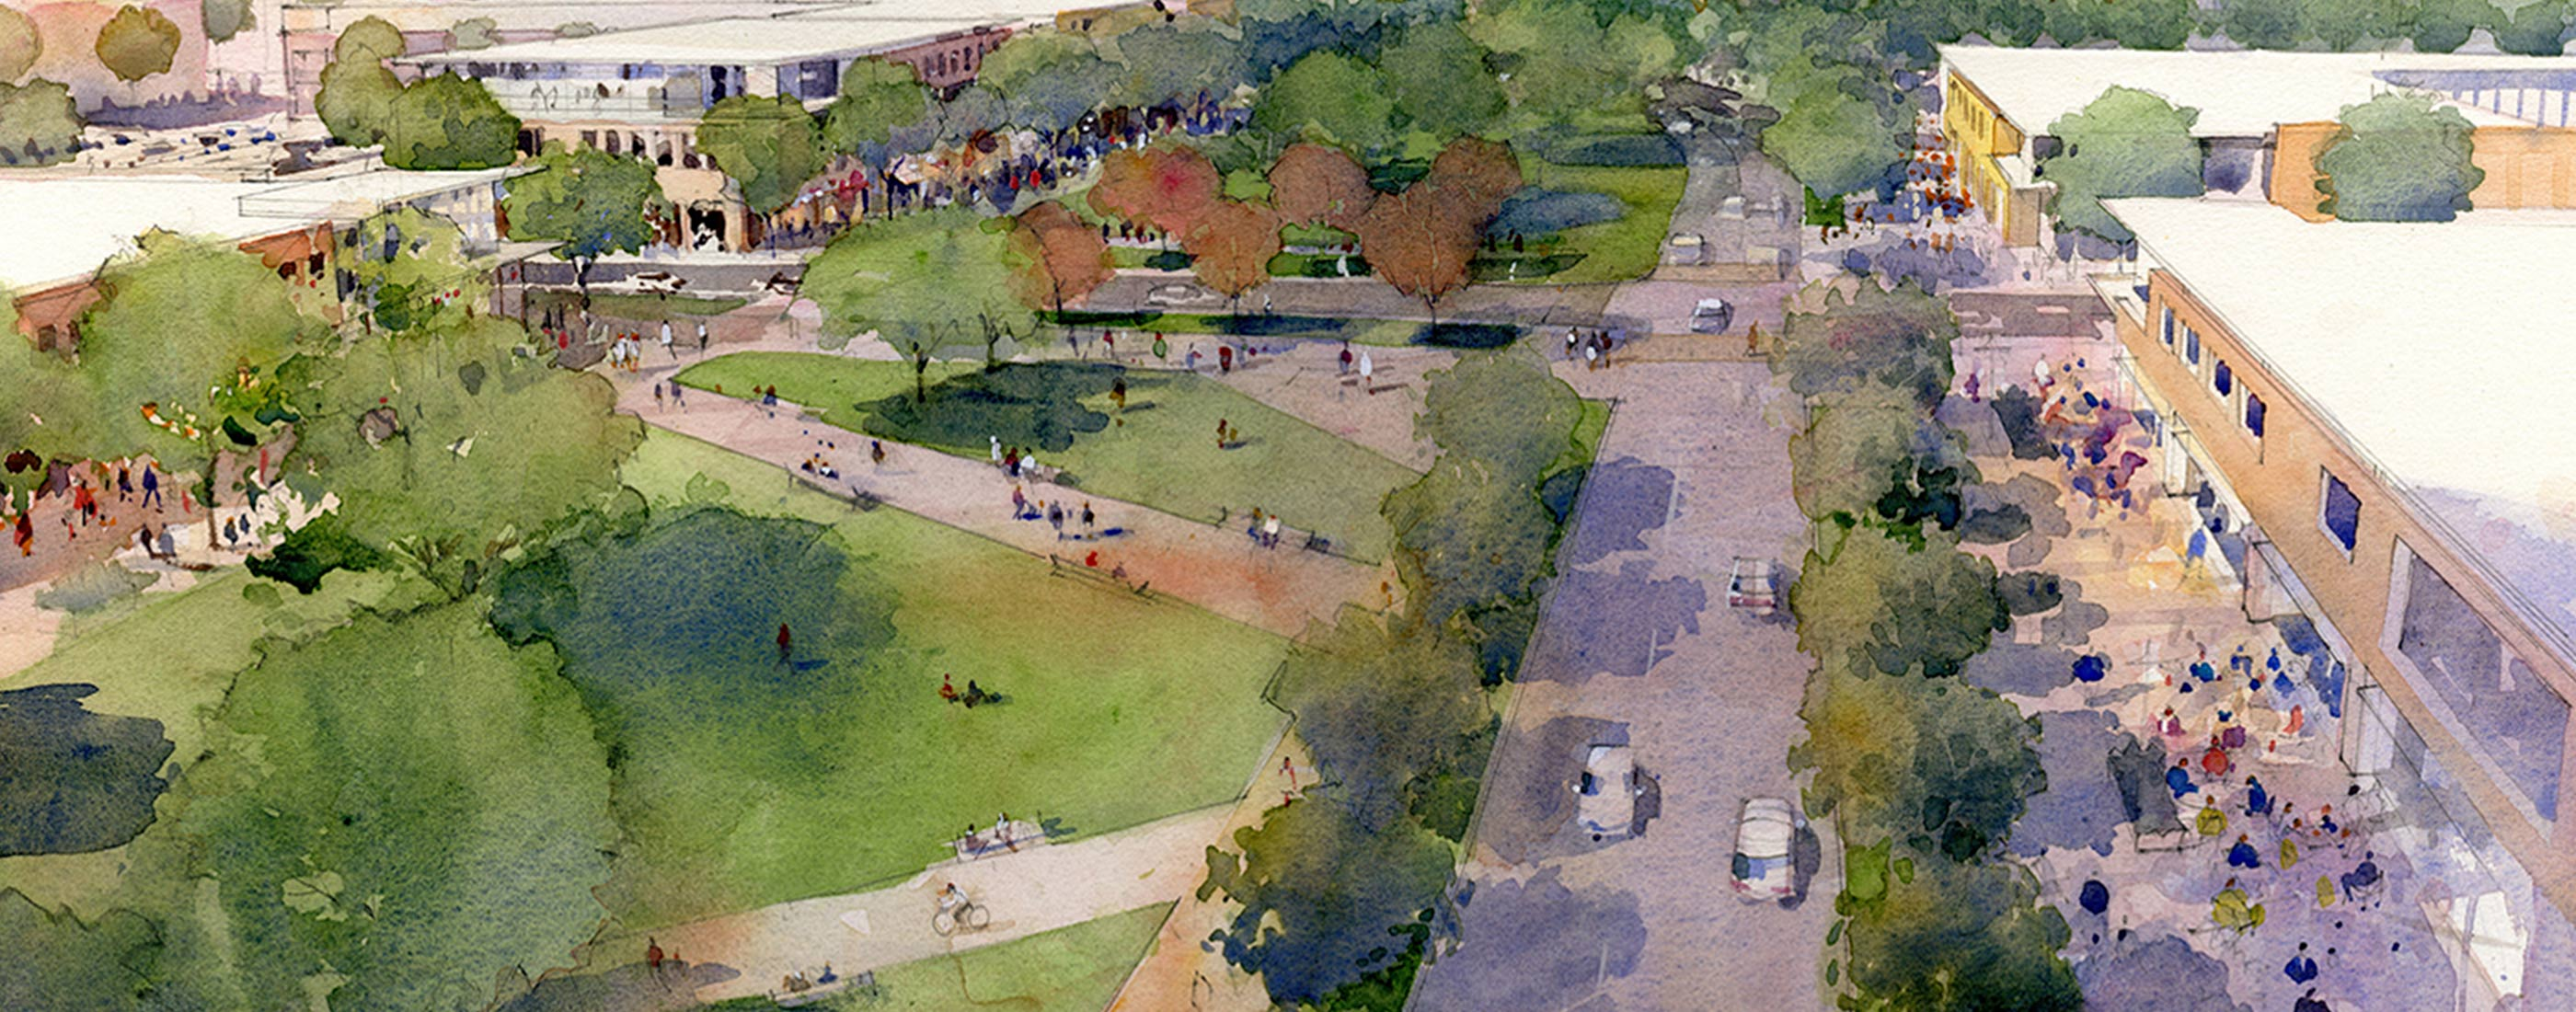 Water color of OHM Advisors' vision to develop Northland Mall into a mixed-use public space